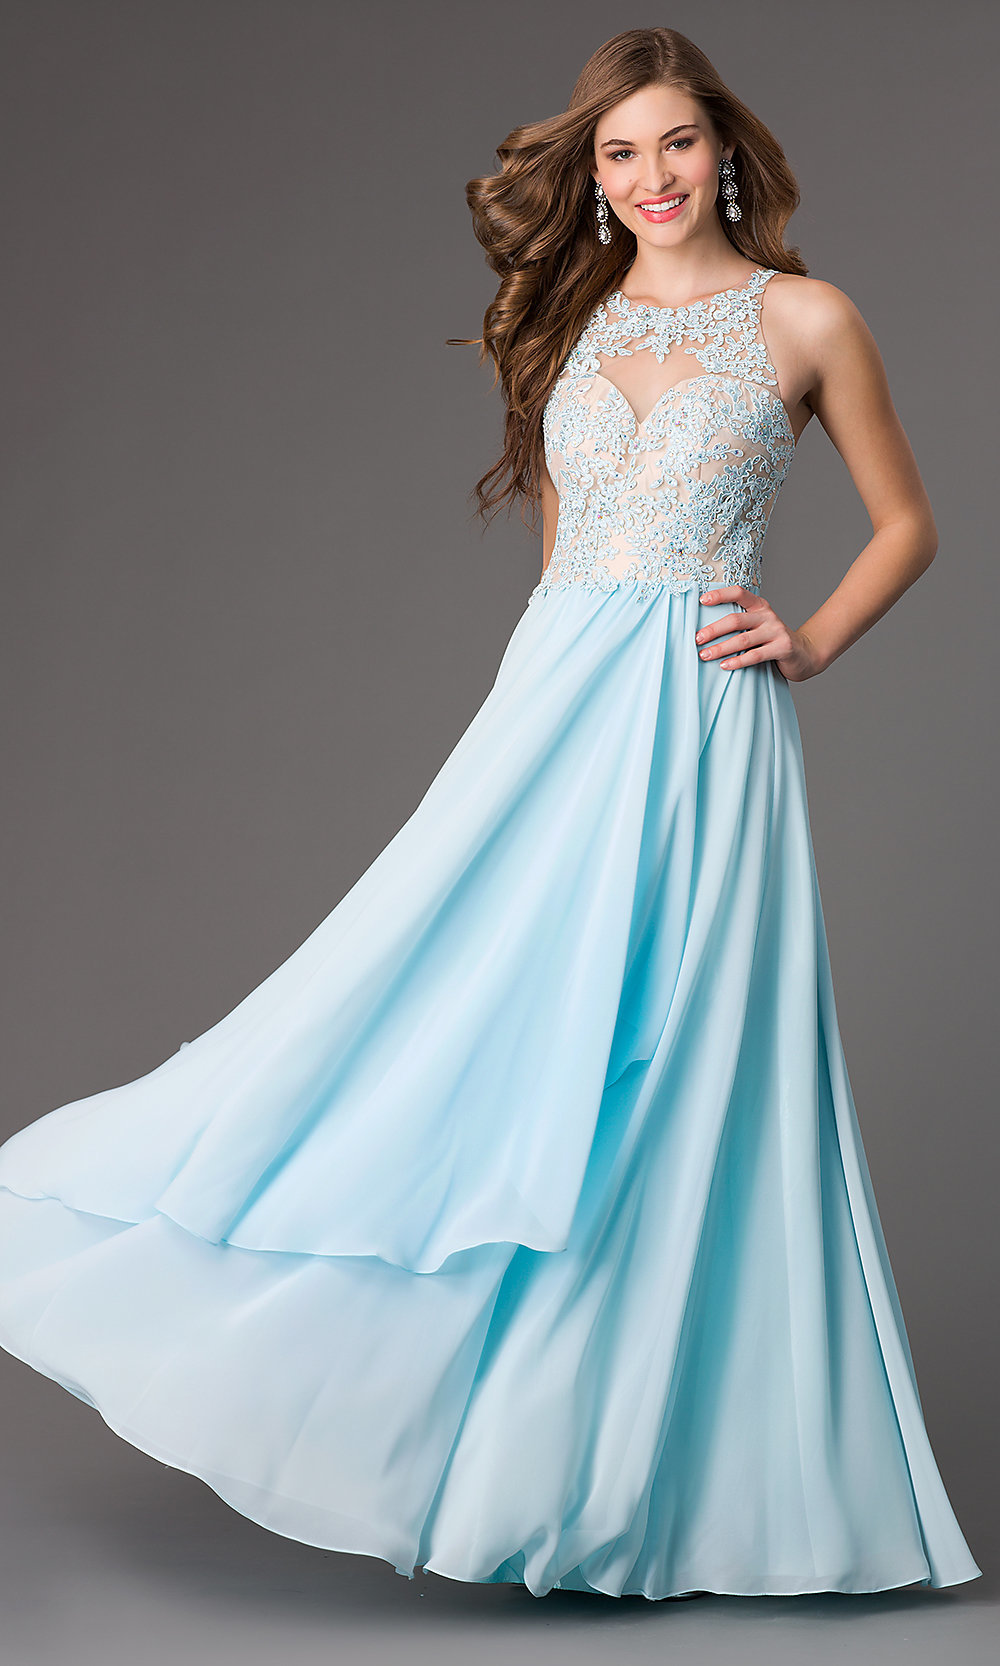 Floor Length Illusion Sweetheart Dress- PromGirl